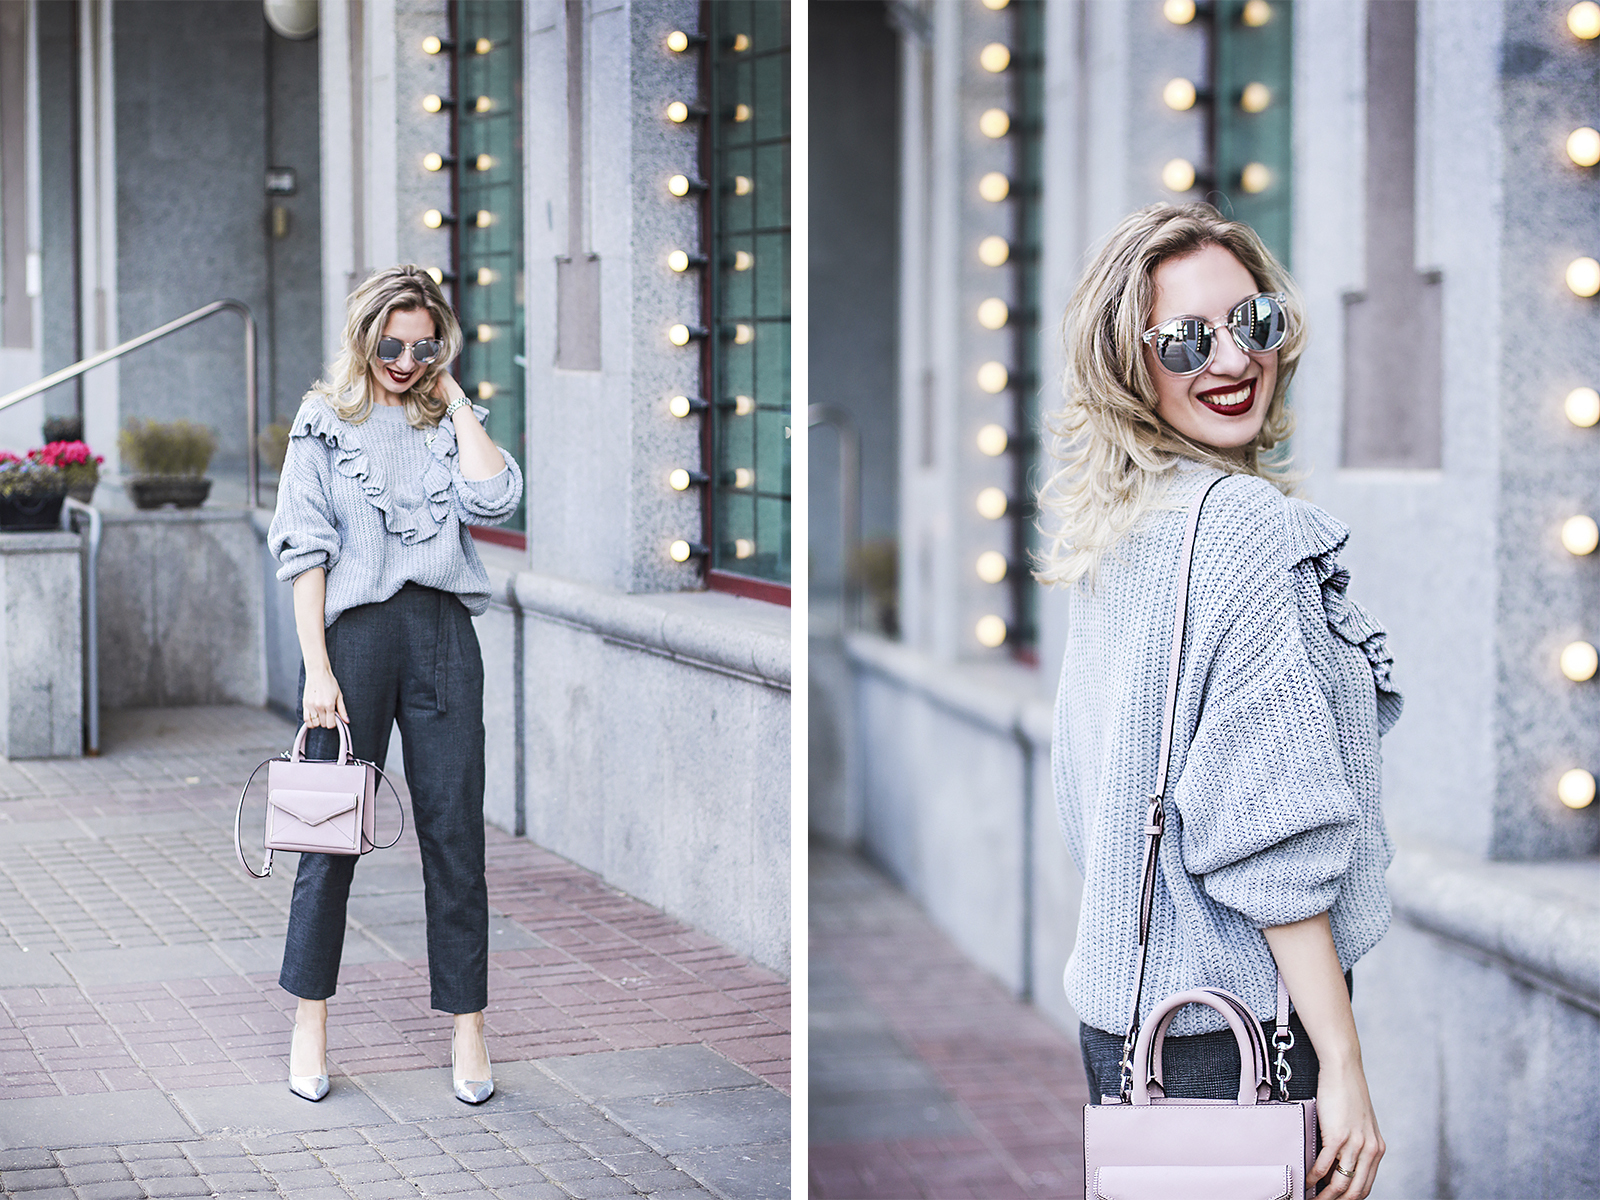 margarita_maslova_ritalifestyle_silver_shoes_cozy_ruffles_sweater_grey_pants_streetstyle_moscow_russian_fashion_blogger6